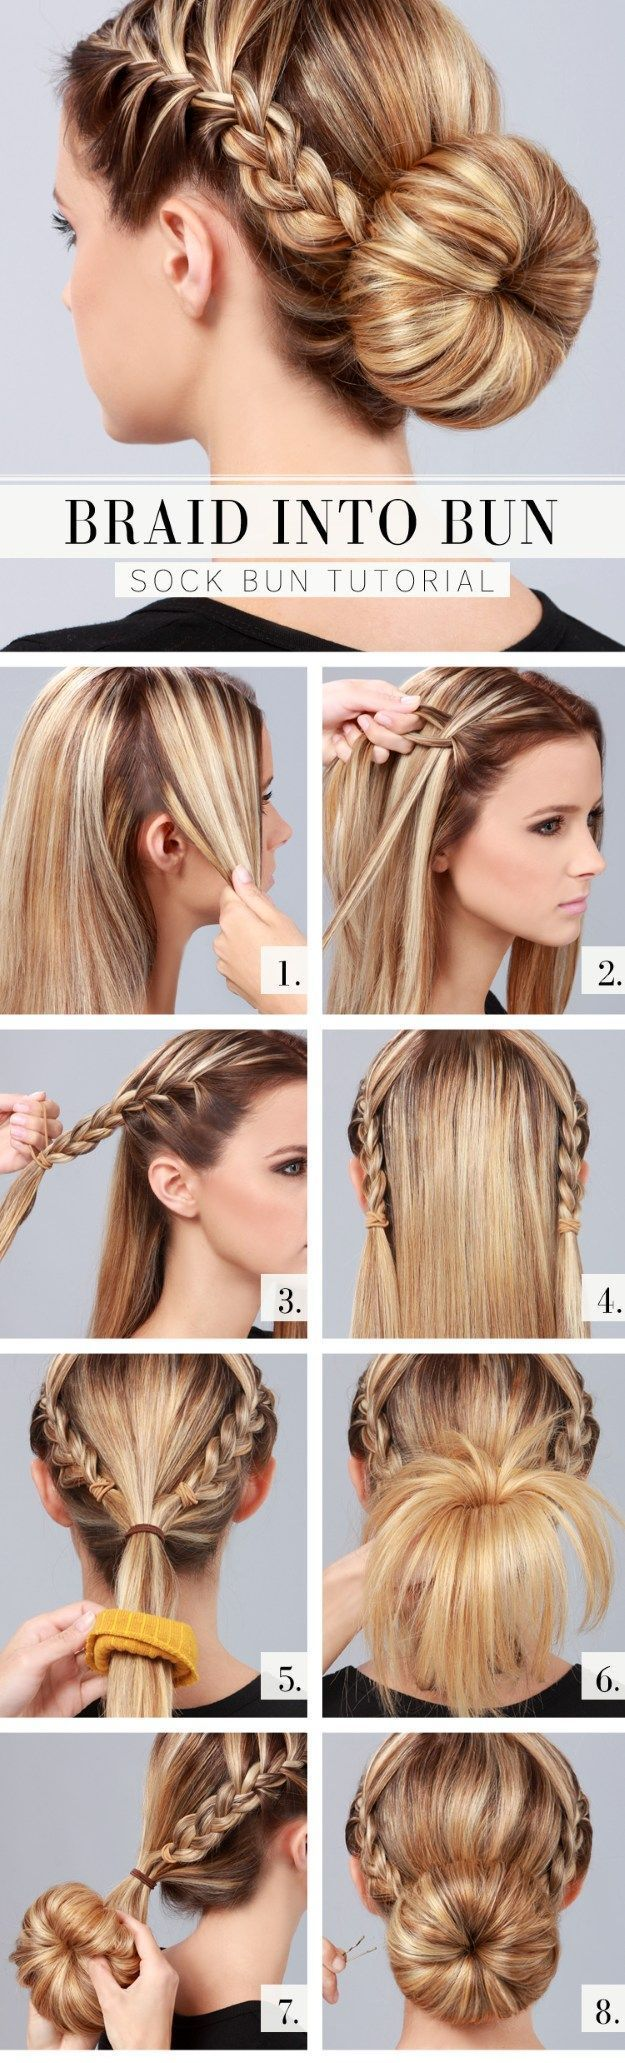 24 Perfect Prom Hairstyles Gorgeous Hair Updo For Long And Short